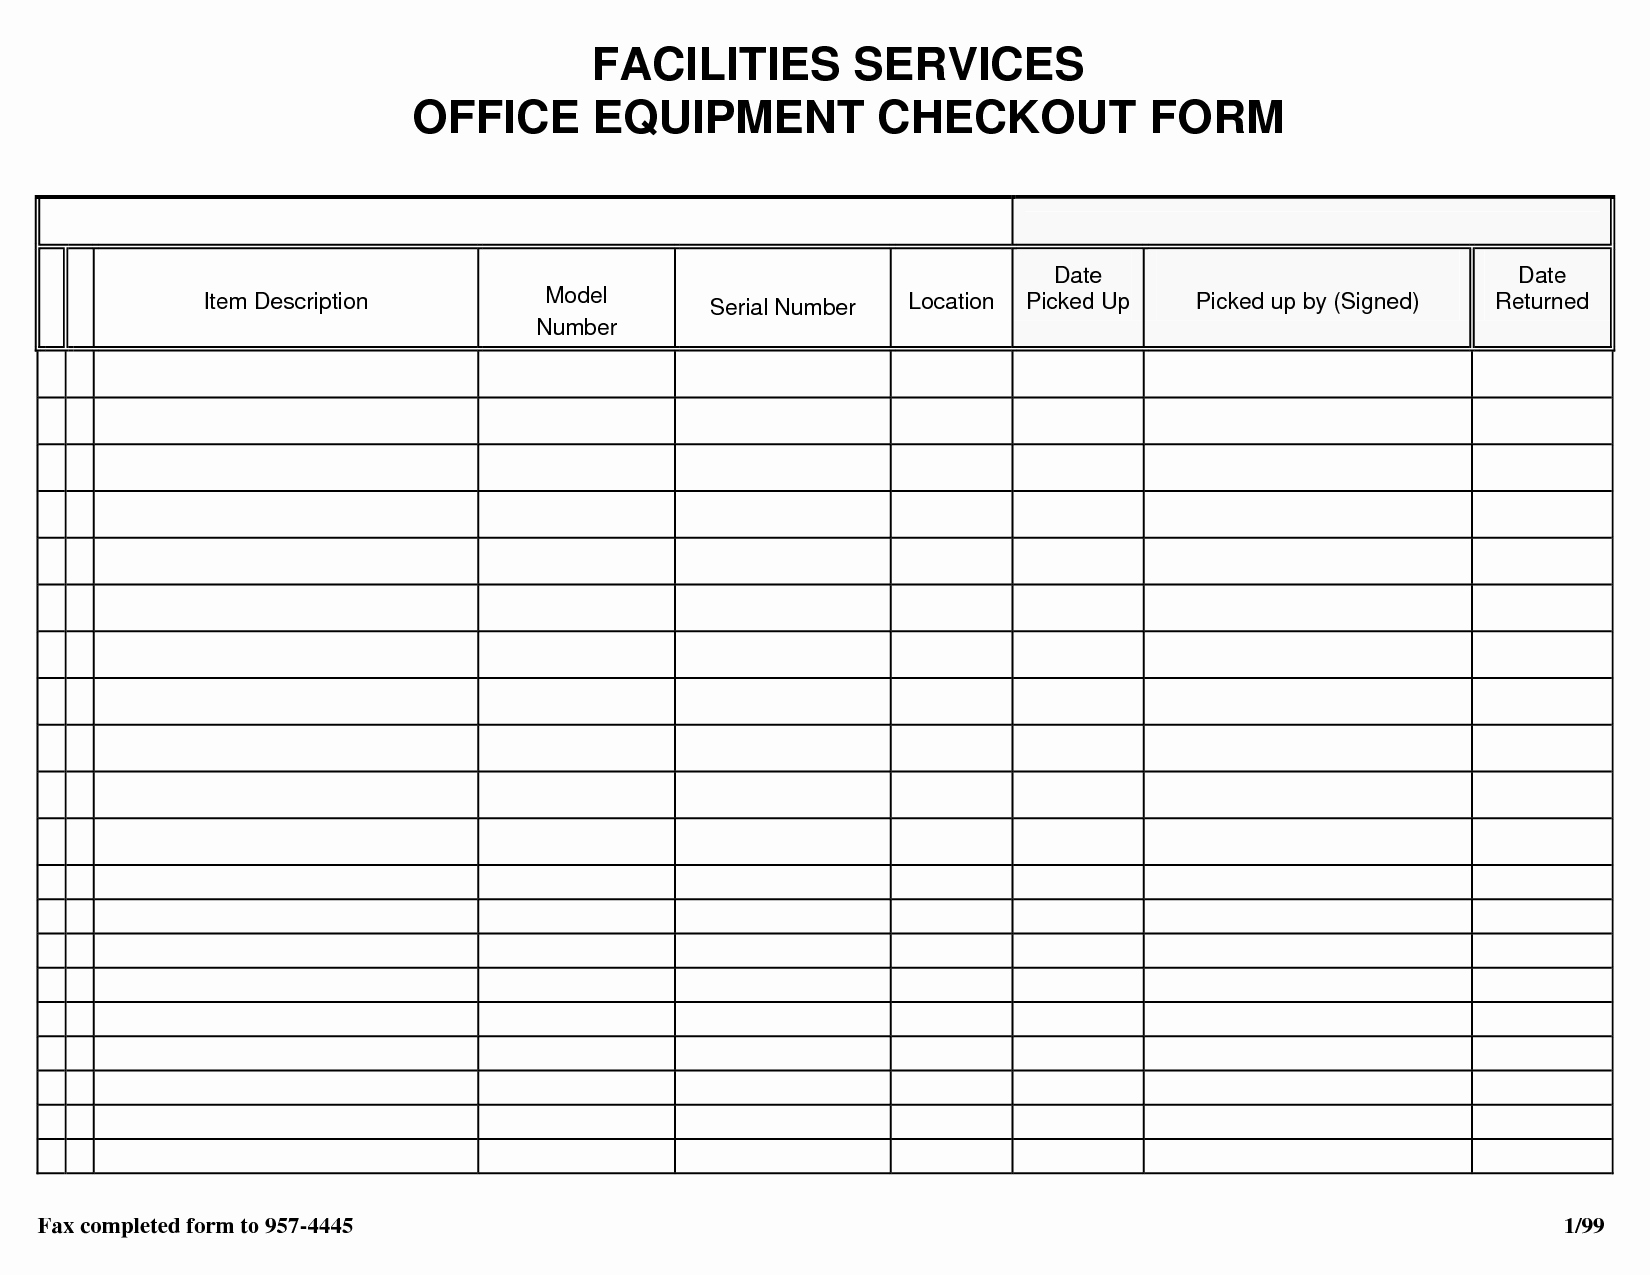 Equipment Checkout form Template Excel Best Of Best S Of Check Out form Template Jail Equipment